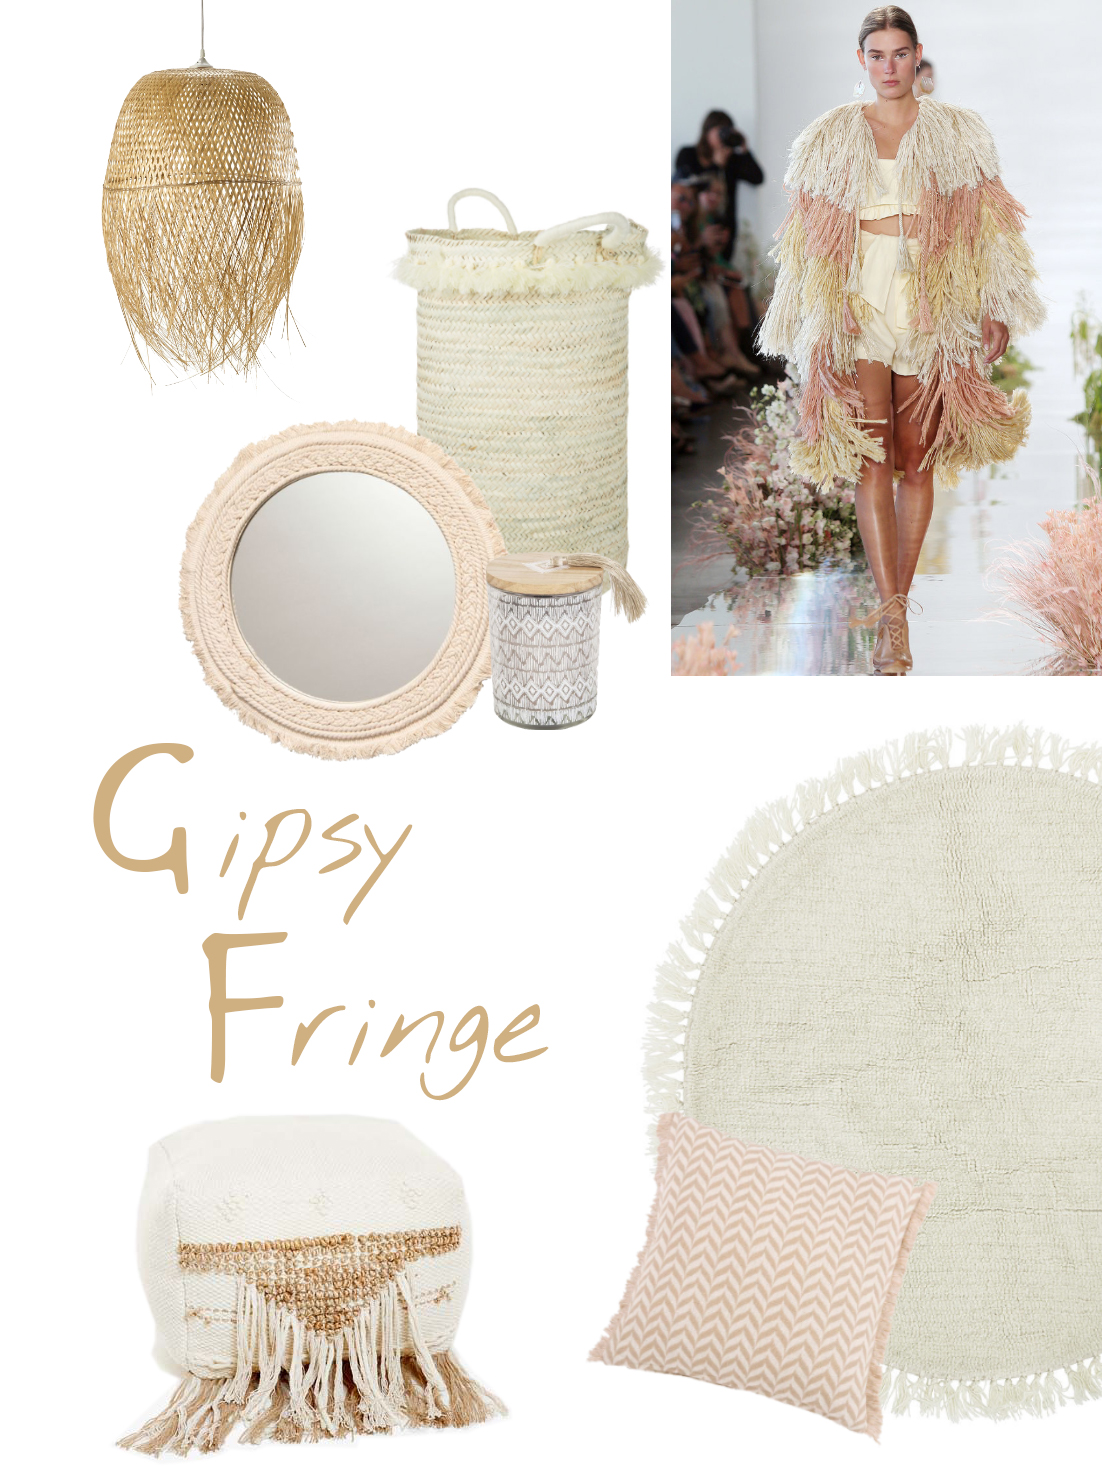 Gipsy fringes mood board: a selection of furniture and accessories.